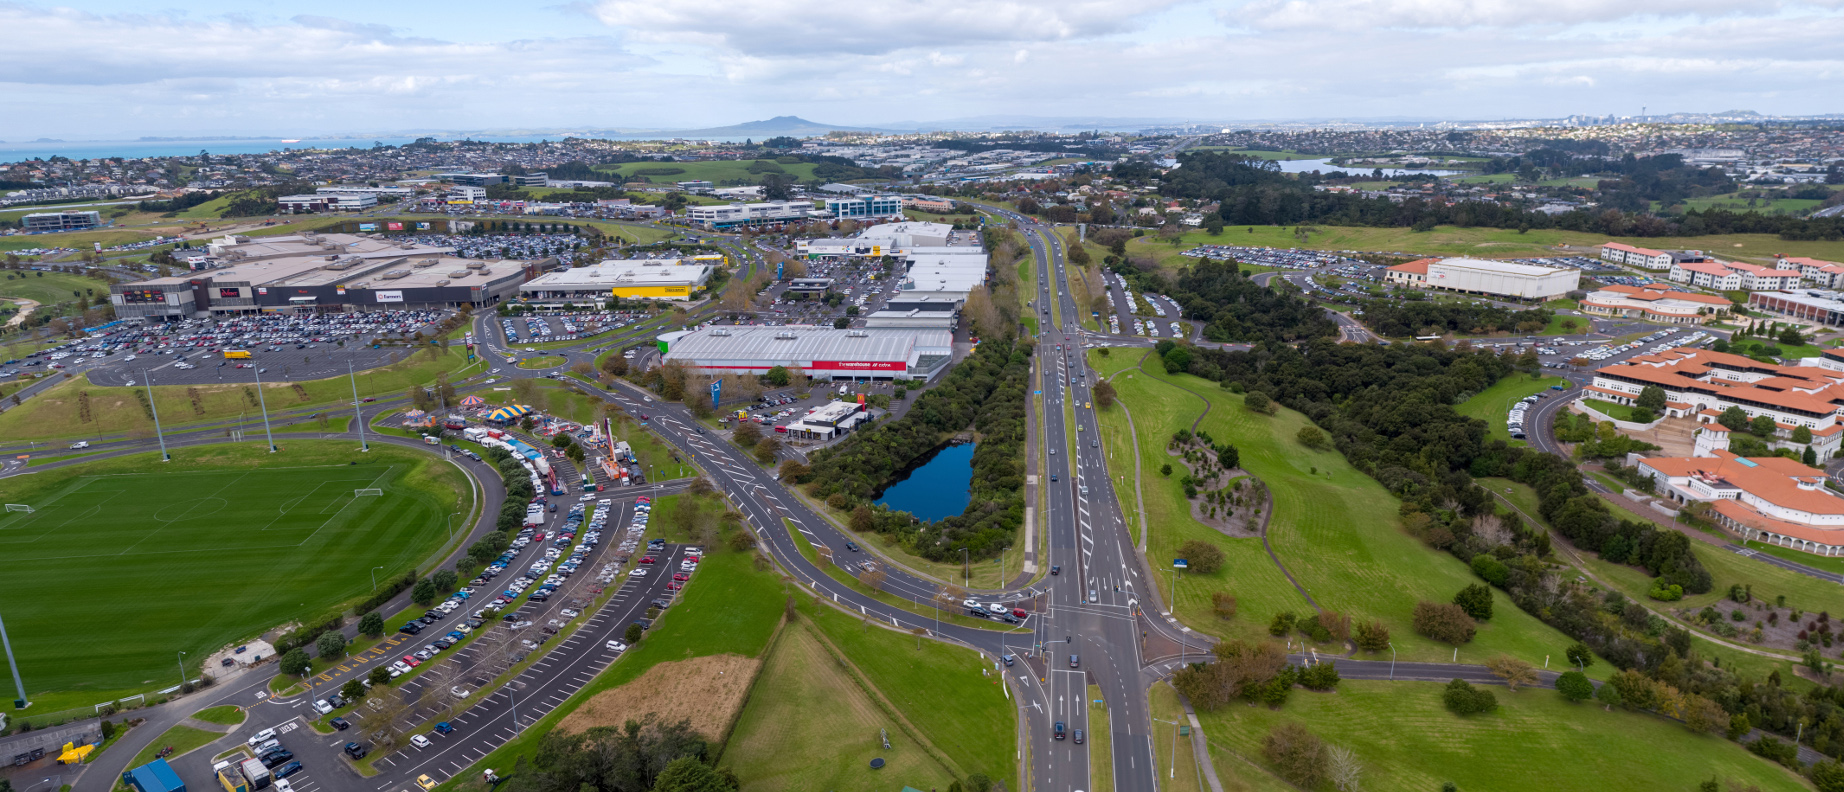 Massey University and Westfield Albany